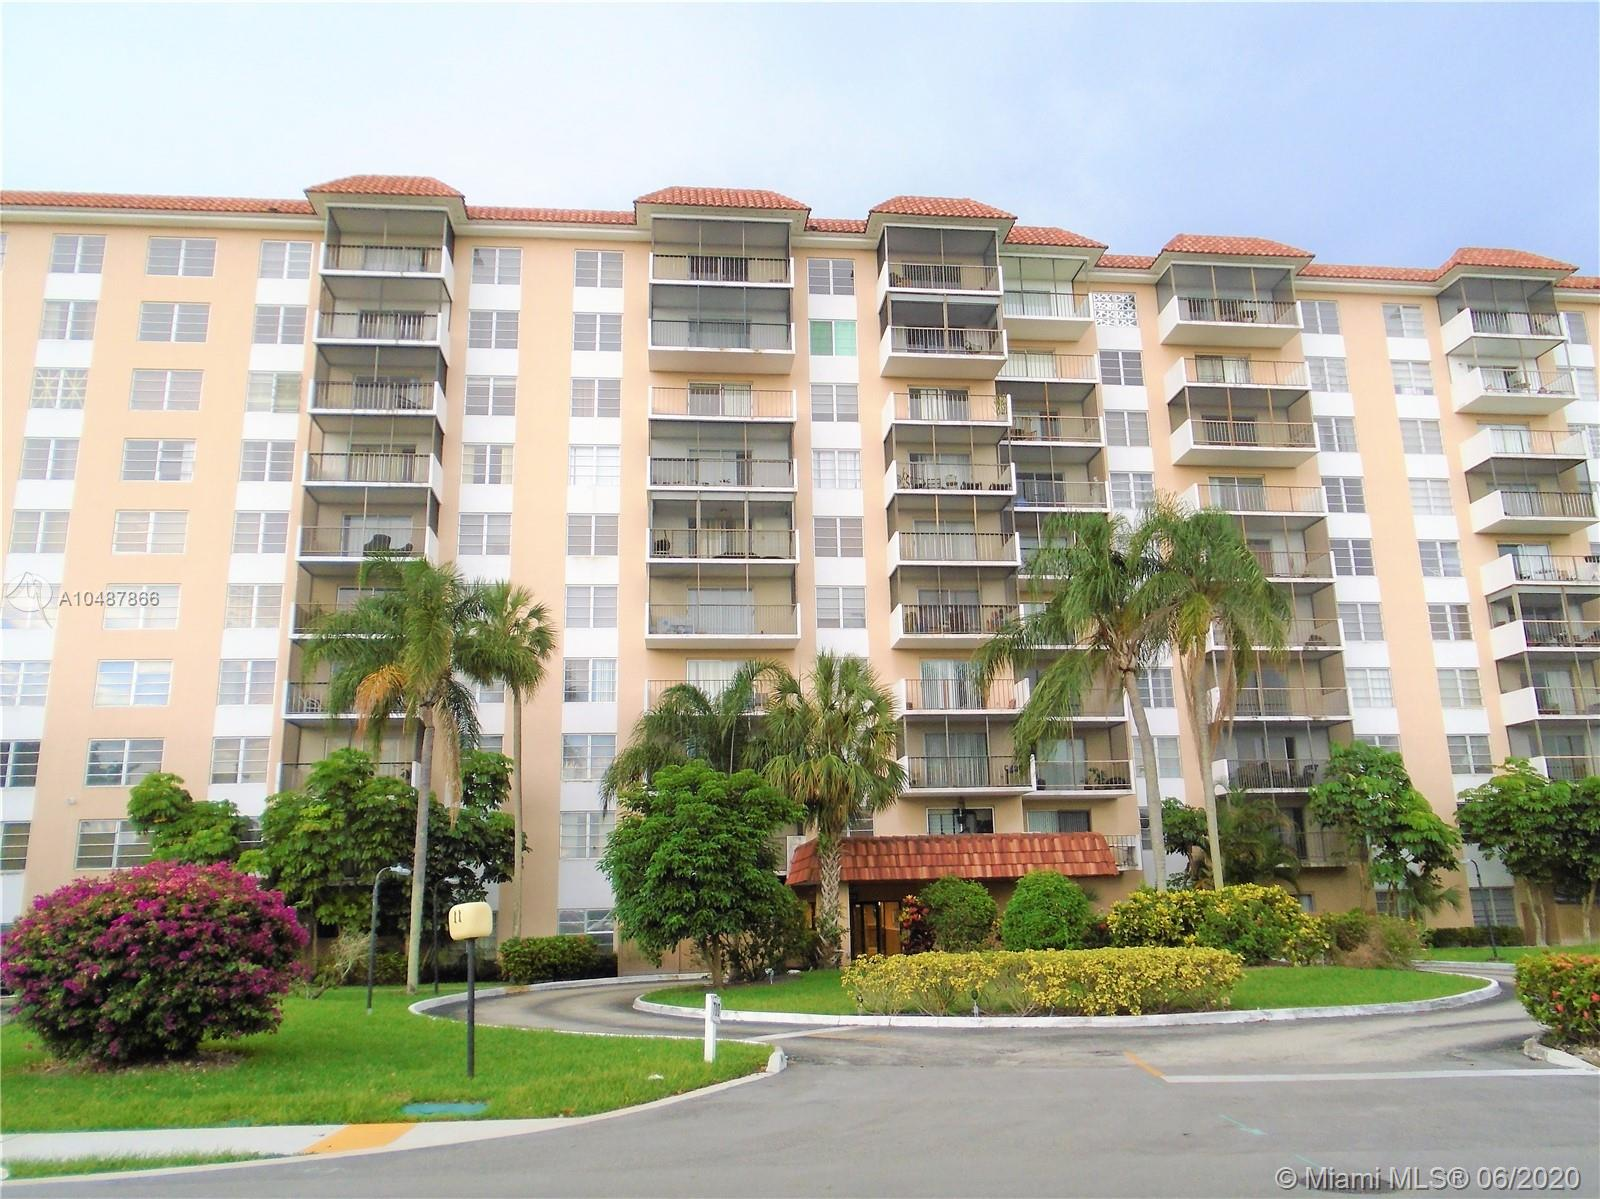 4174  Inverrary Dr #315 For Sale A10487866, FL